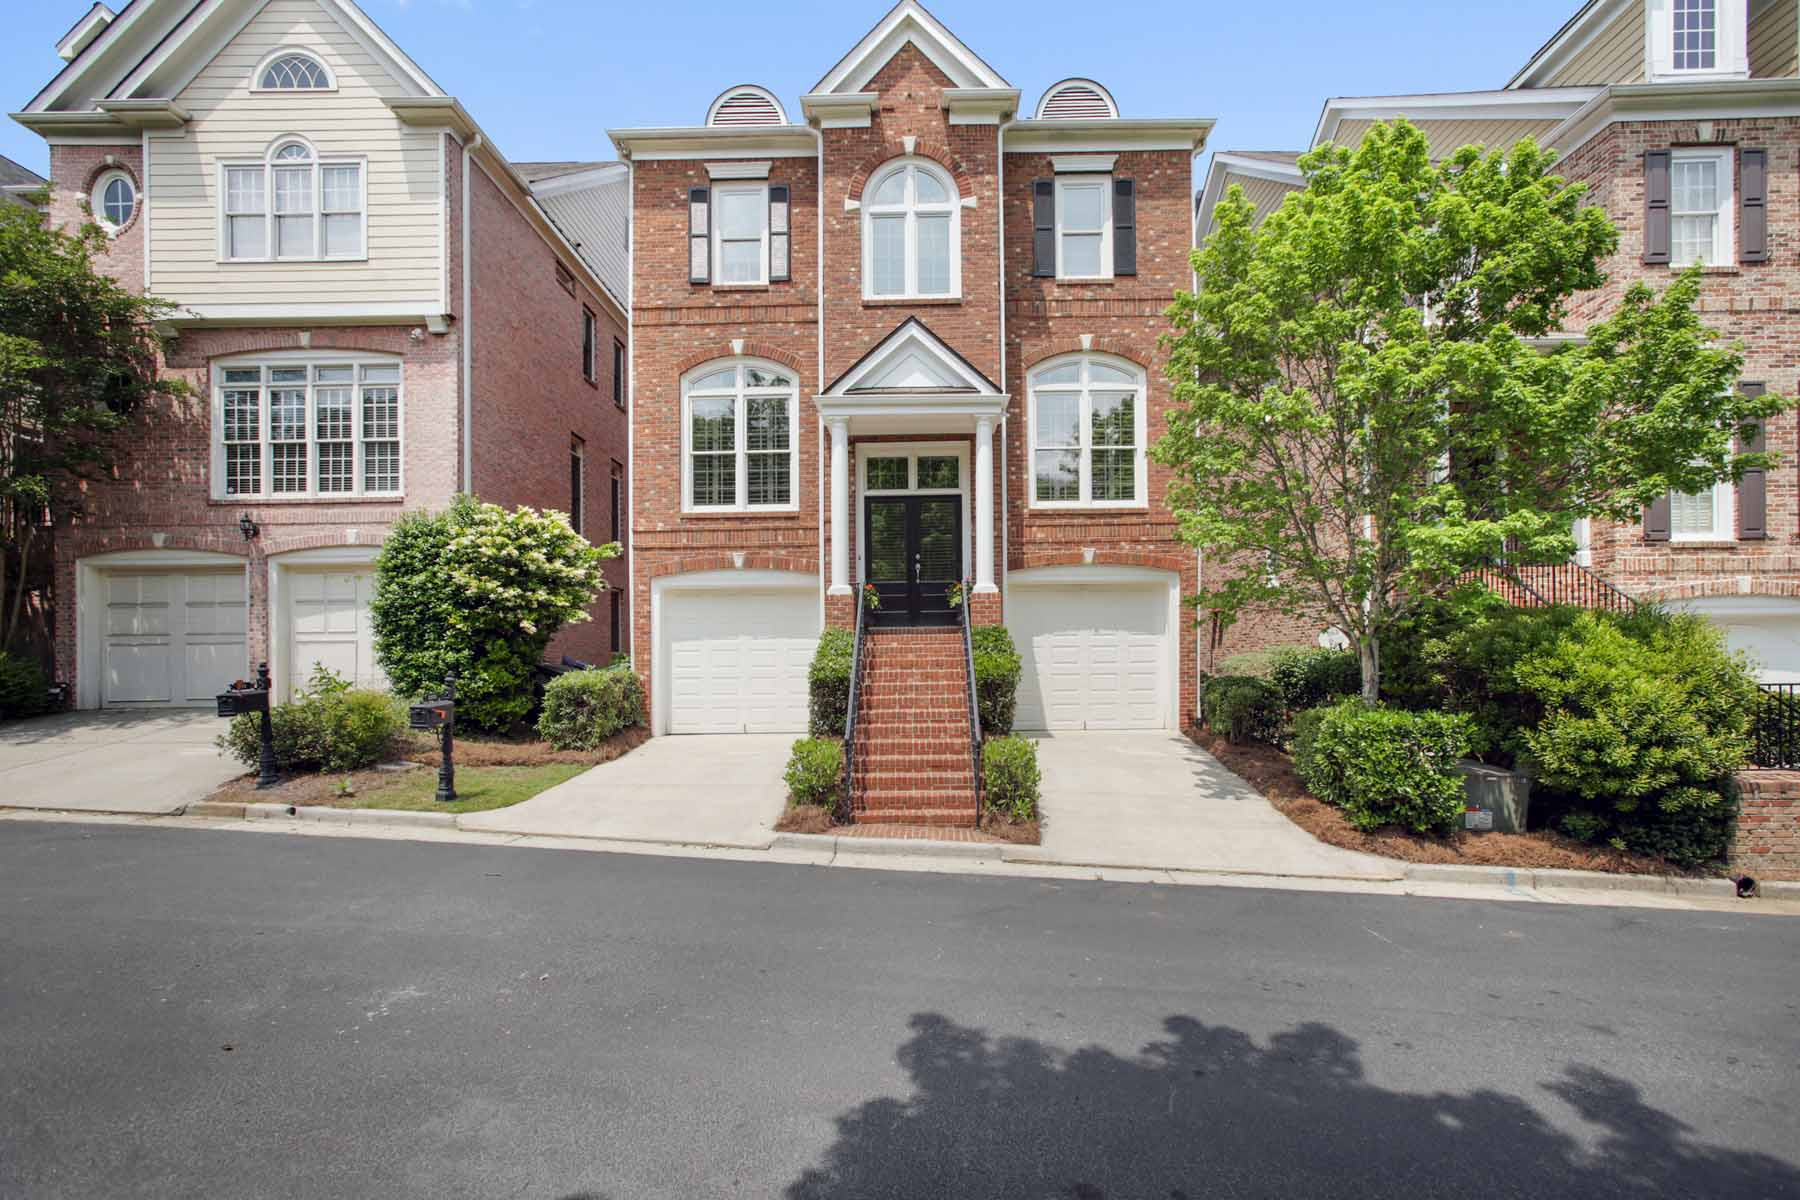 Частный односемейный дом для того Продажа на Amazing All brick Three level Four bedThree and a Half Bath Executive Property 1111 Valley Overlook Drive NE Atlanta, Джорджия, 30324 Соединенные Штаты